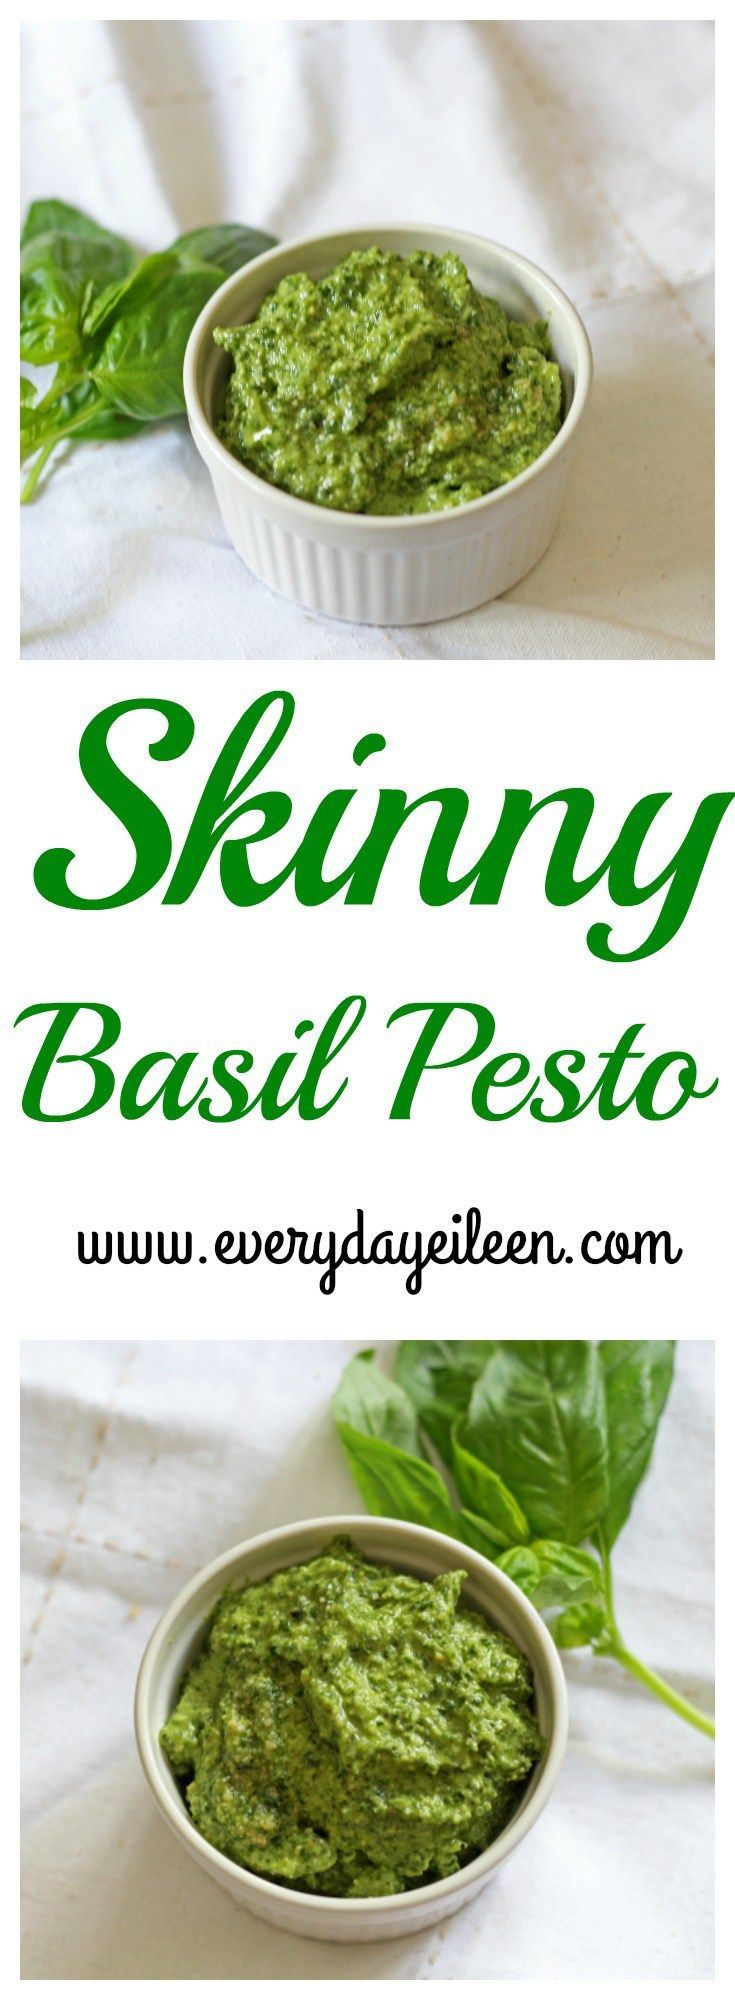 Skinny Basil Pesto has all the flavor with less calories. Skinny Basil Pesto is perfect in so many dishes like pasta, chicken, and veggies! Freezer friendly